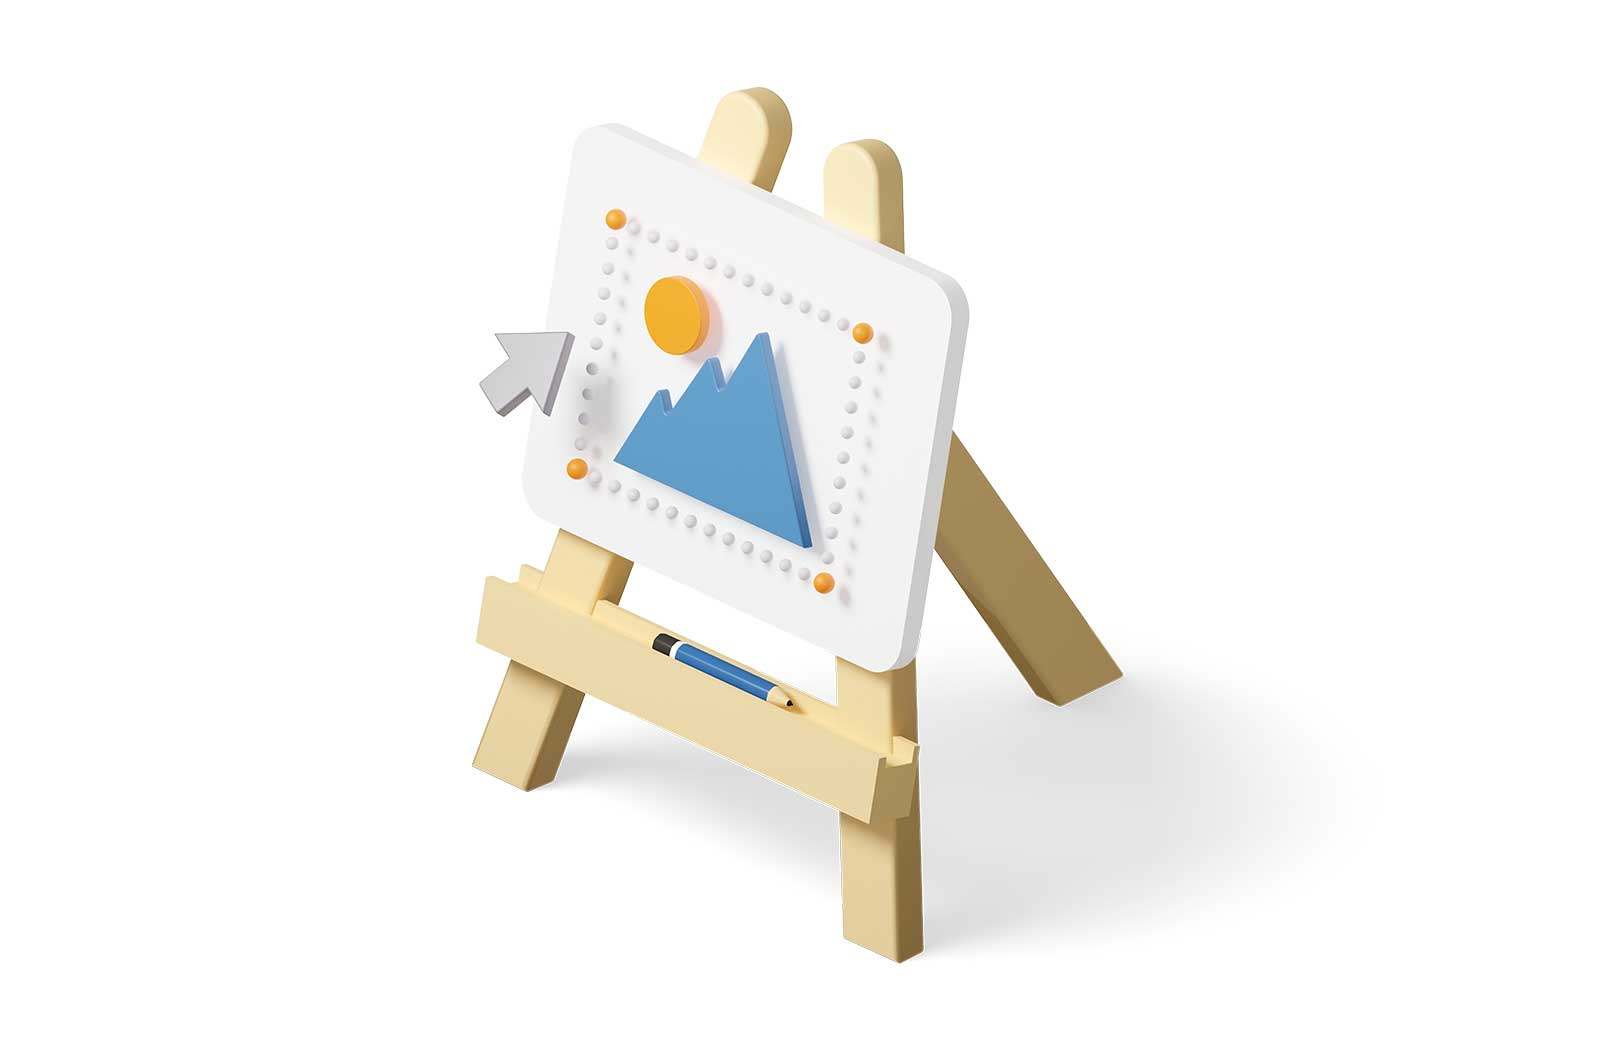 Digital easel stand with picture and cursor sign 3d rendered illustration. Isometric electronic painting canvas on easel. Online art education or drawing courses idea